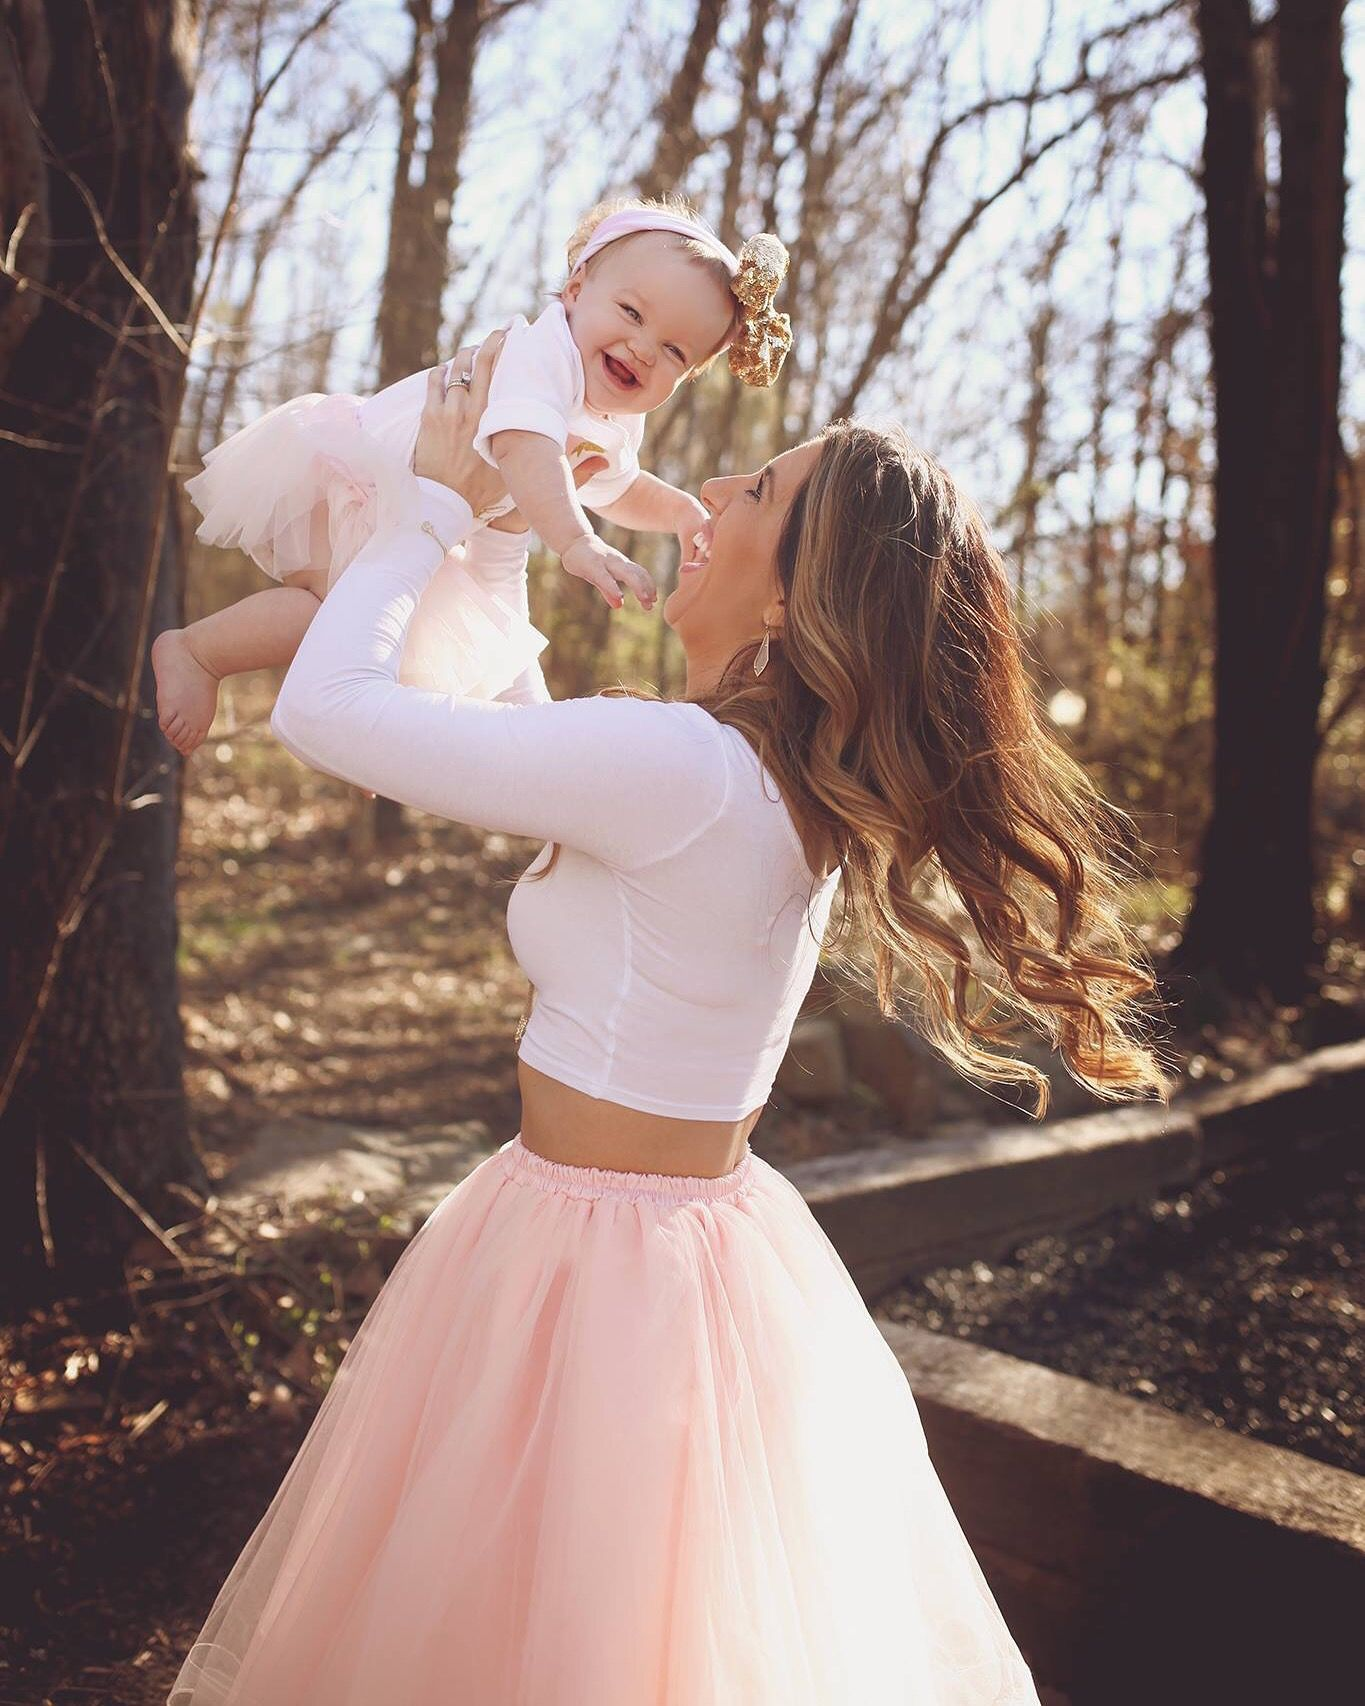 Mommy And Me Photo For First Birthday Baby Girl Ideas